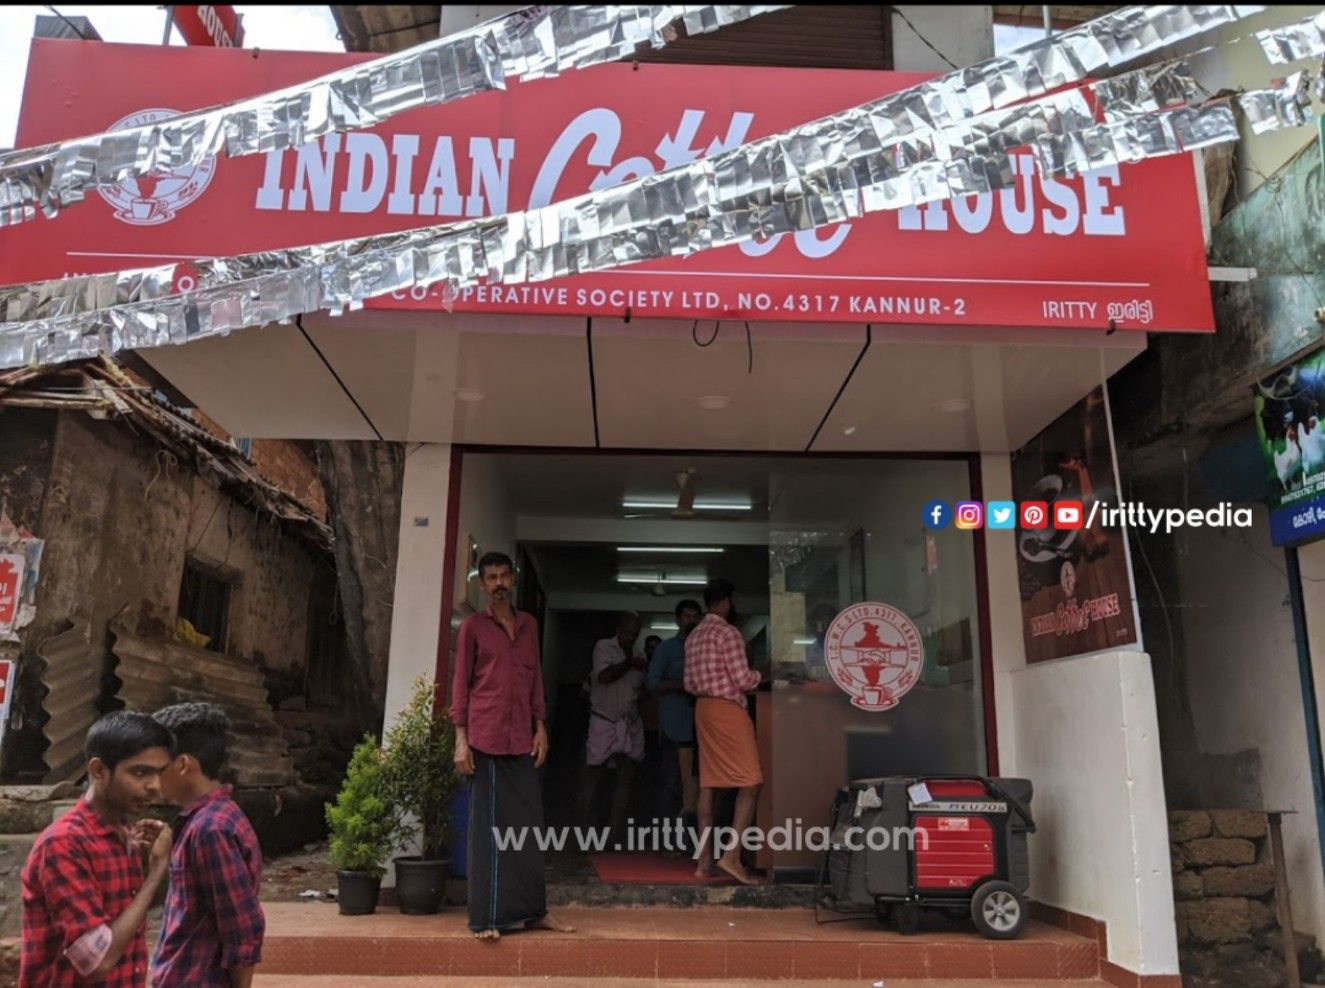 Indian Coffee House Iritty Iritty Pedia Iritty S Local Search